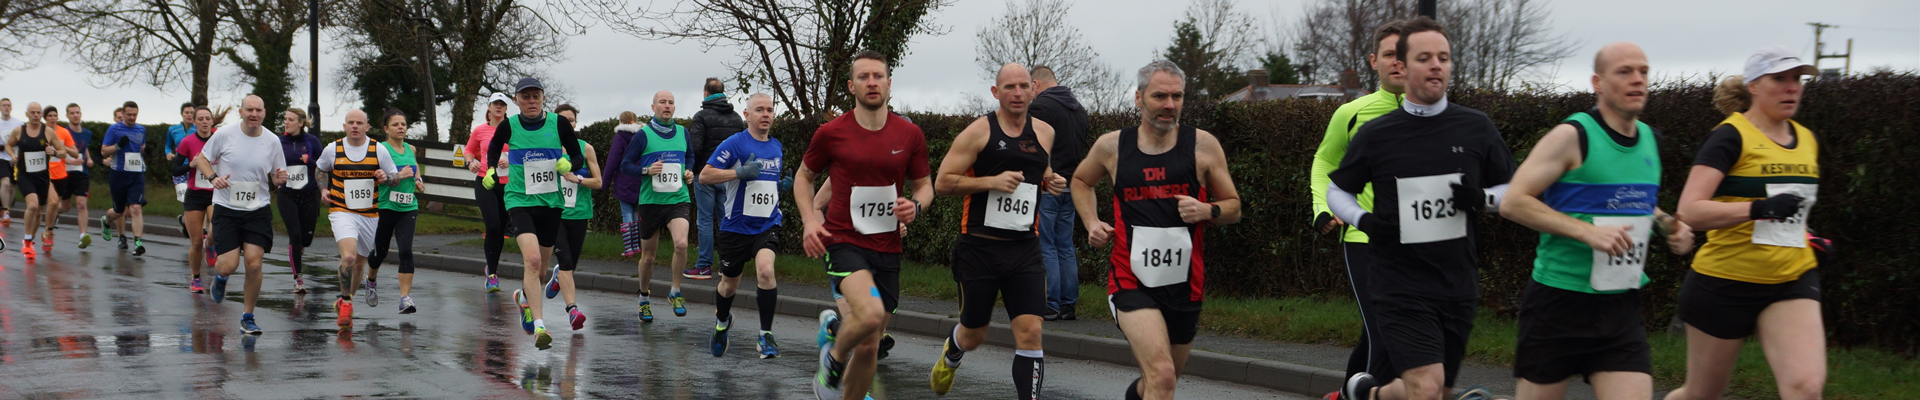 Carlisle Resolution 5k & 10k 2018